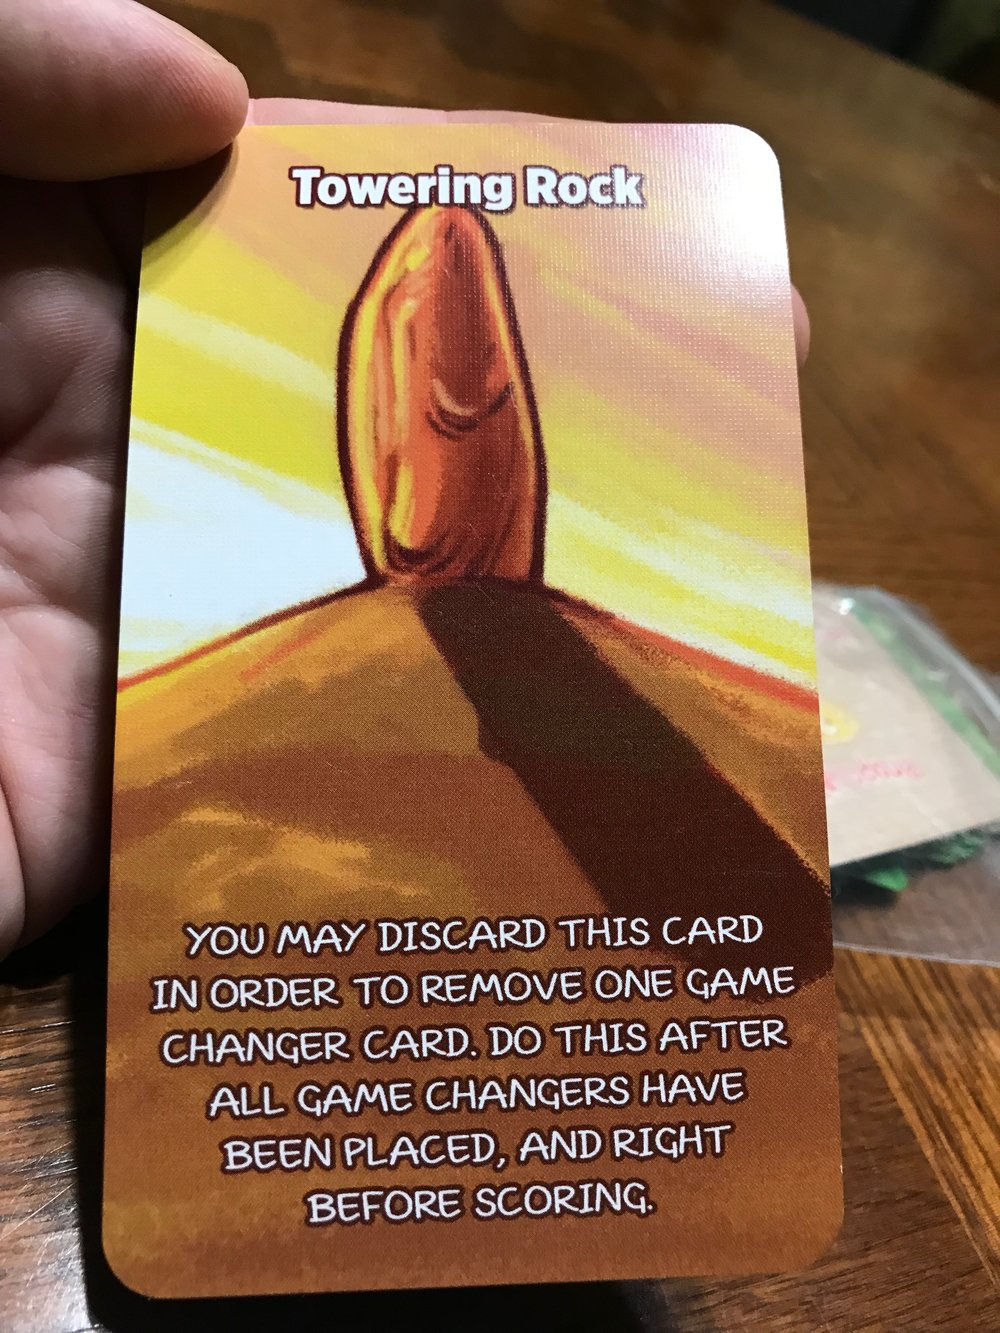 Towering Rock.JPG